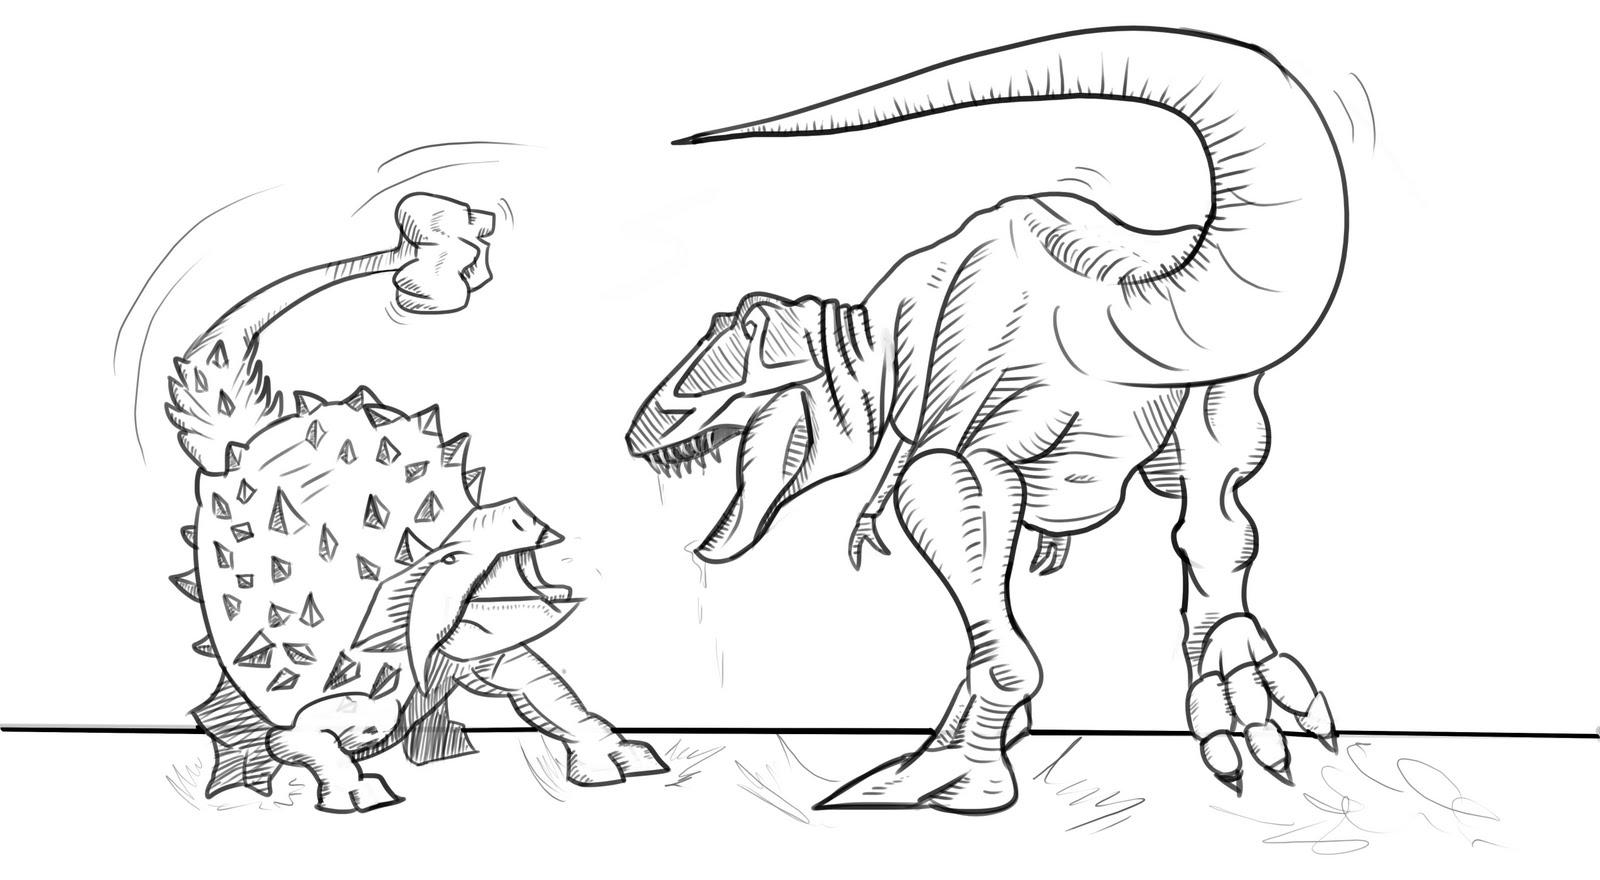 coloring pages dinosaurs online fighting | Ashley's Art Dump: Dinosaur sketch